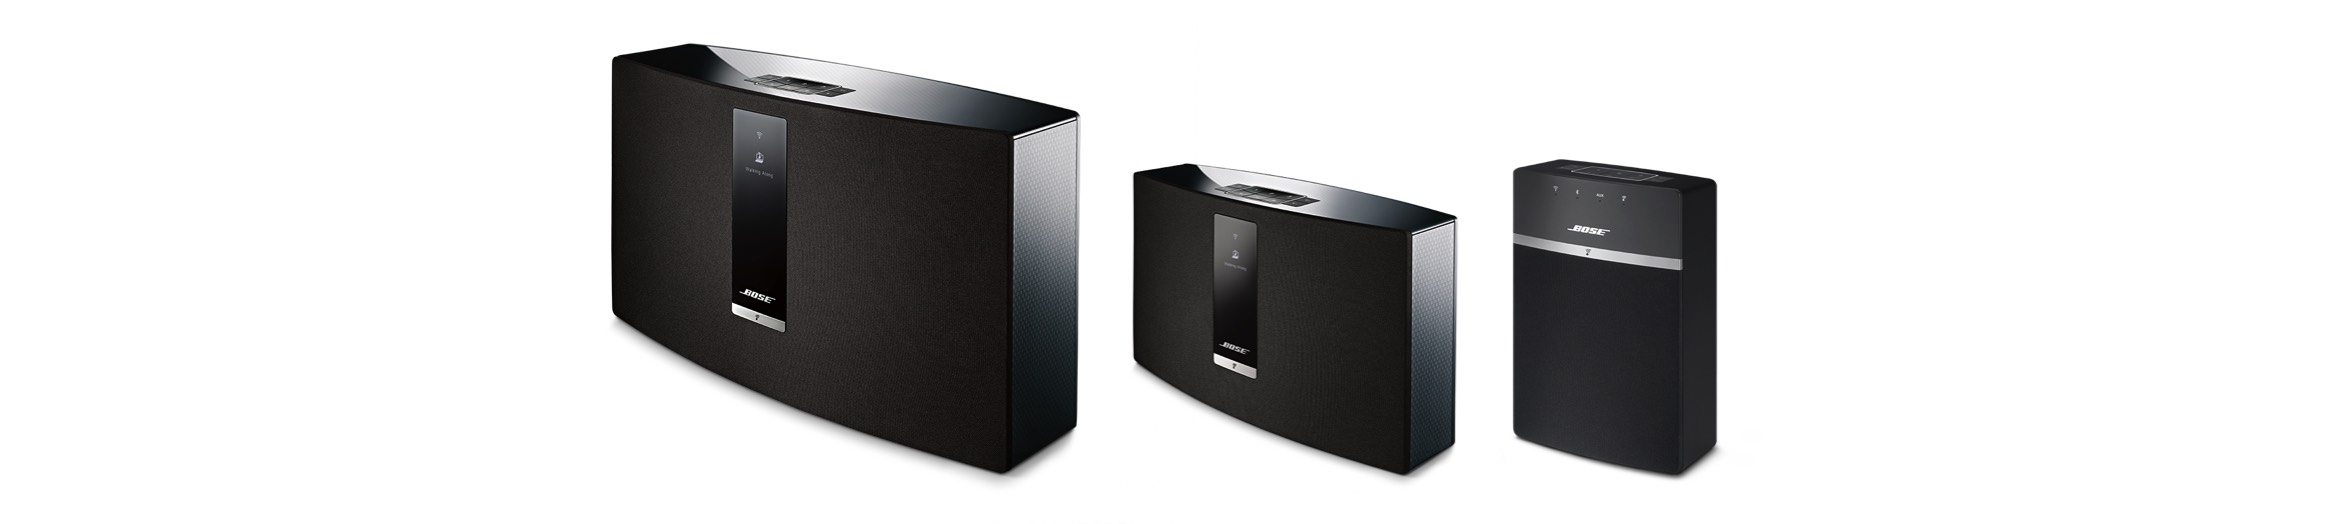 Bose soundtouch multiroom speakers